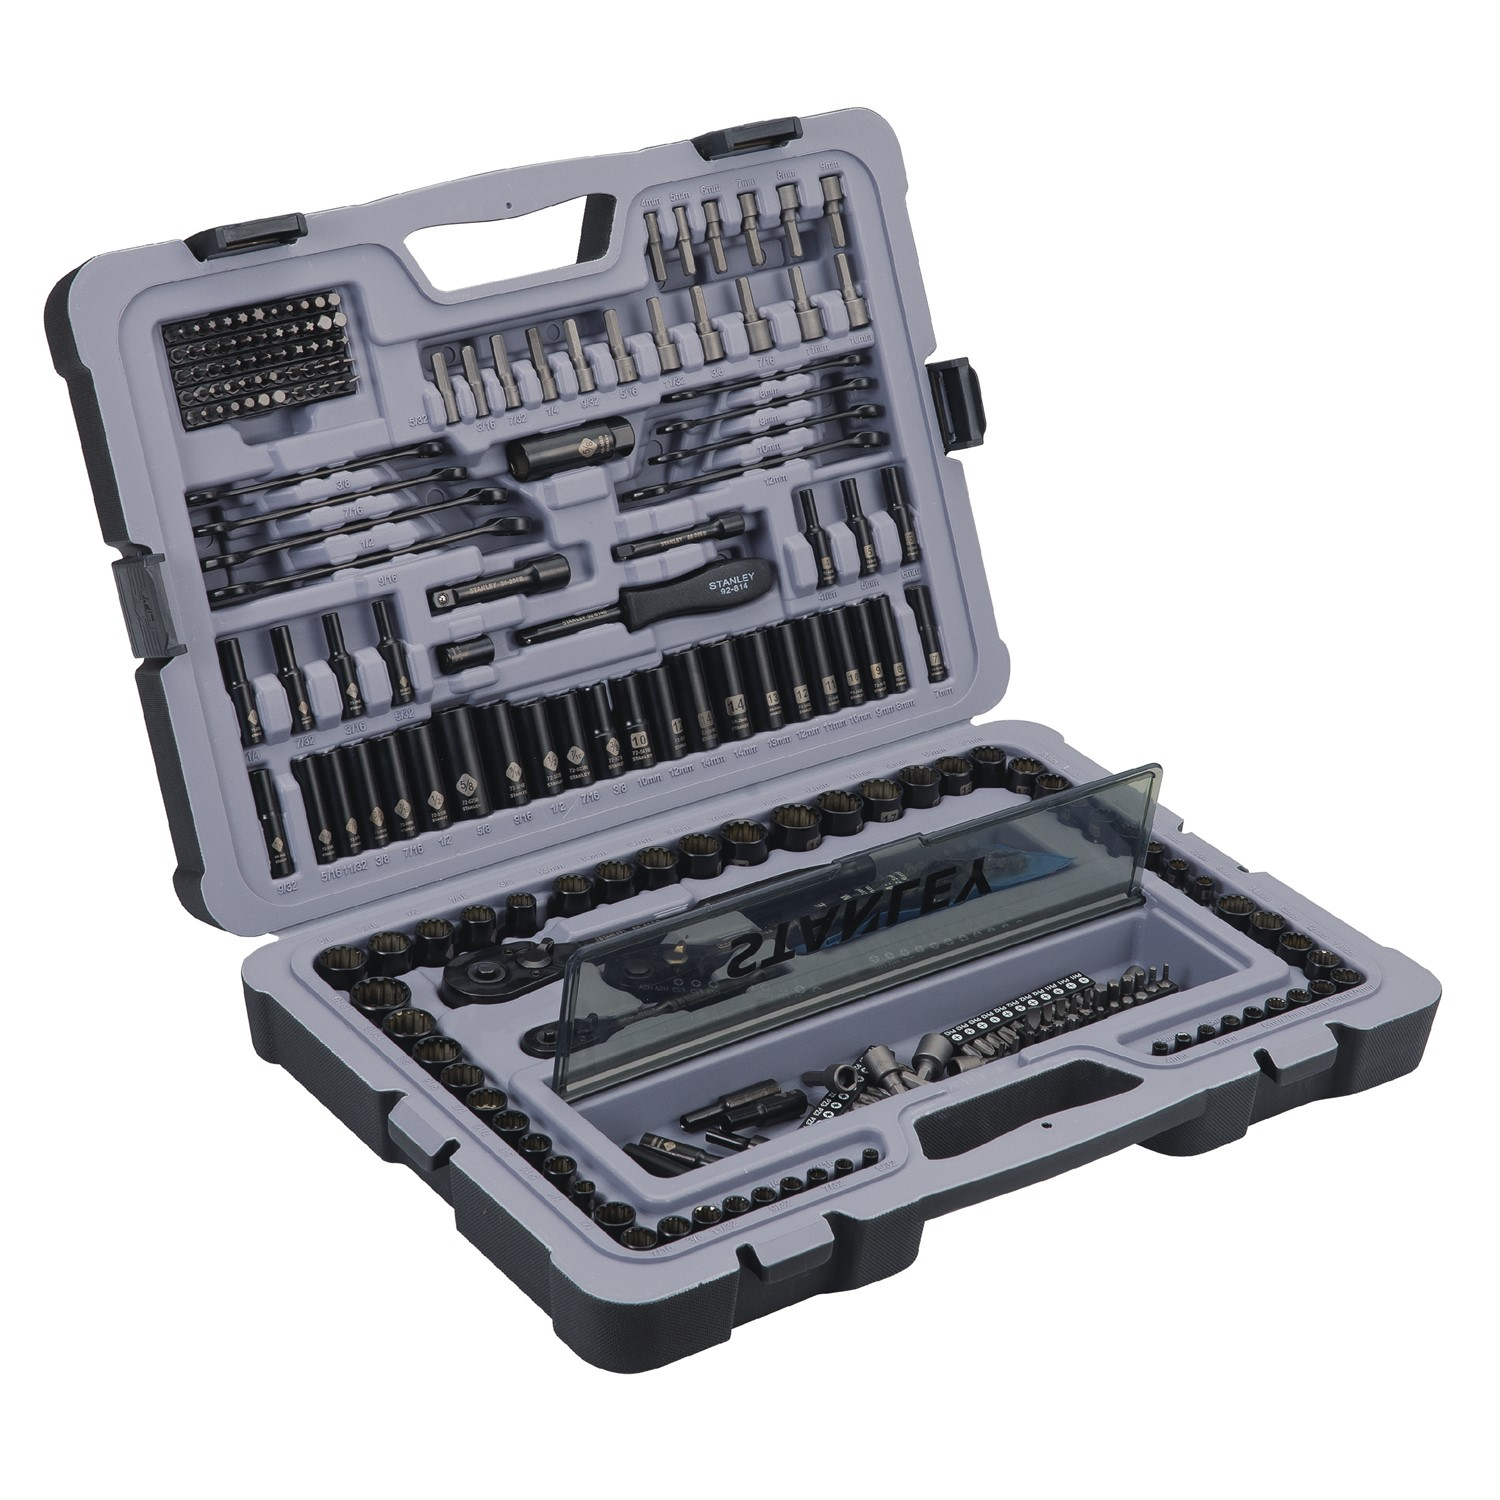 STANLEY 123-Piece Mechanics Tool Set, Black Chrome | STMT72254W by Stanley Black & Decker